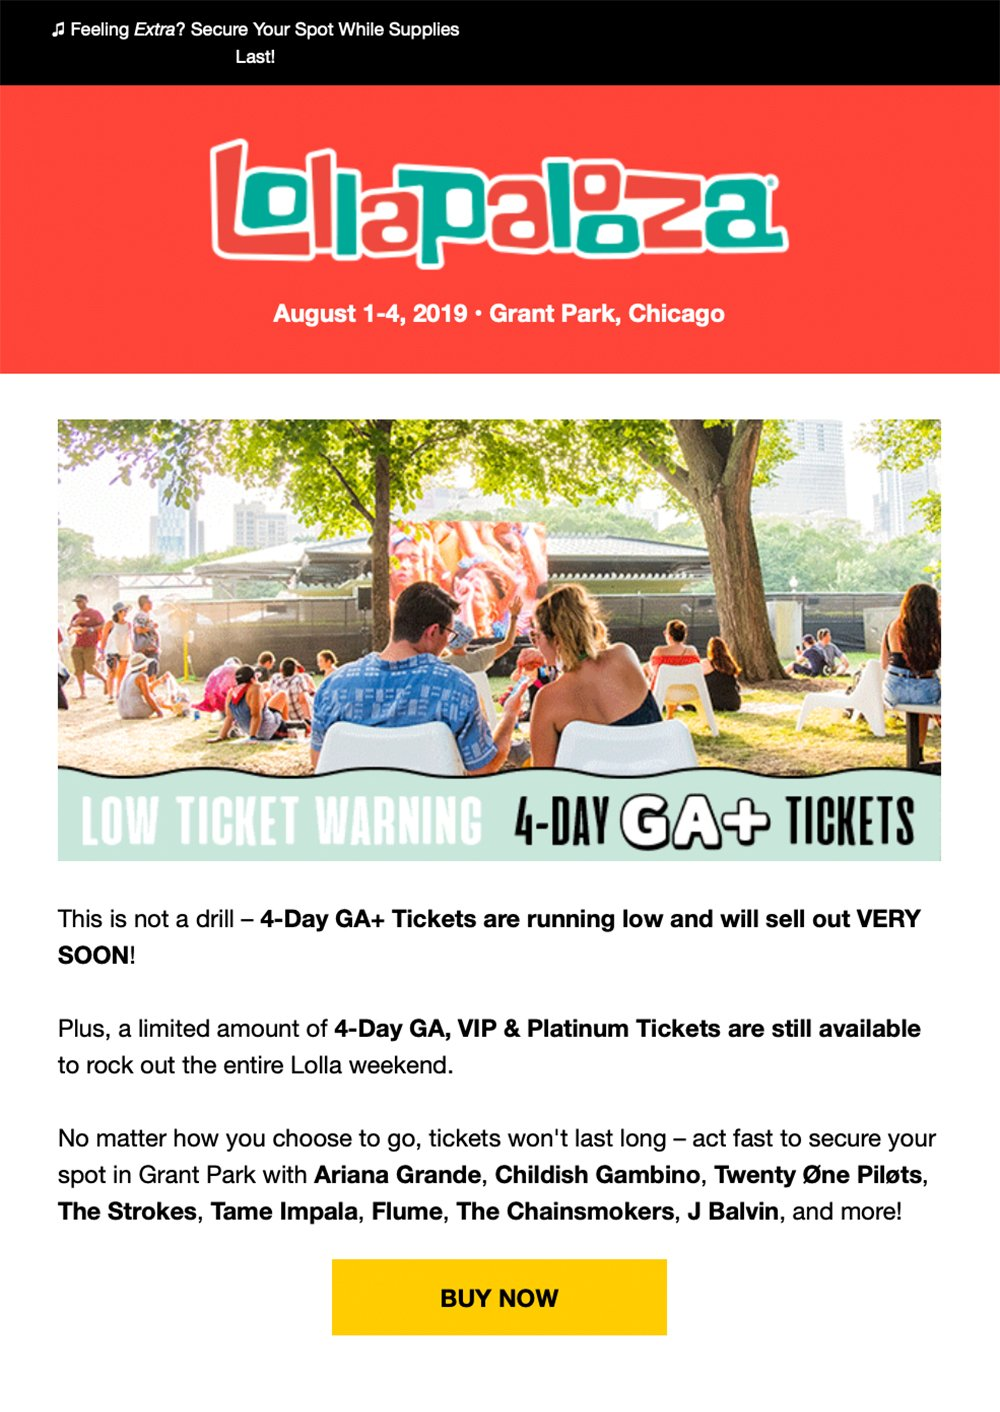 Event newsletter - Lollapalooza urgent email example